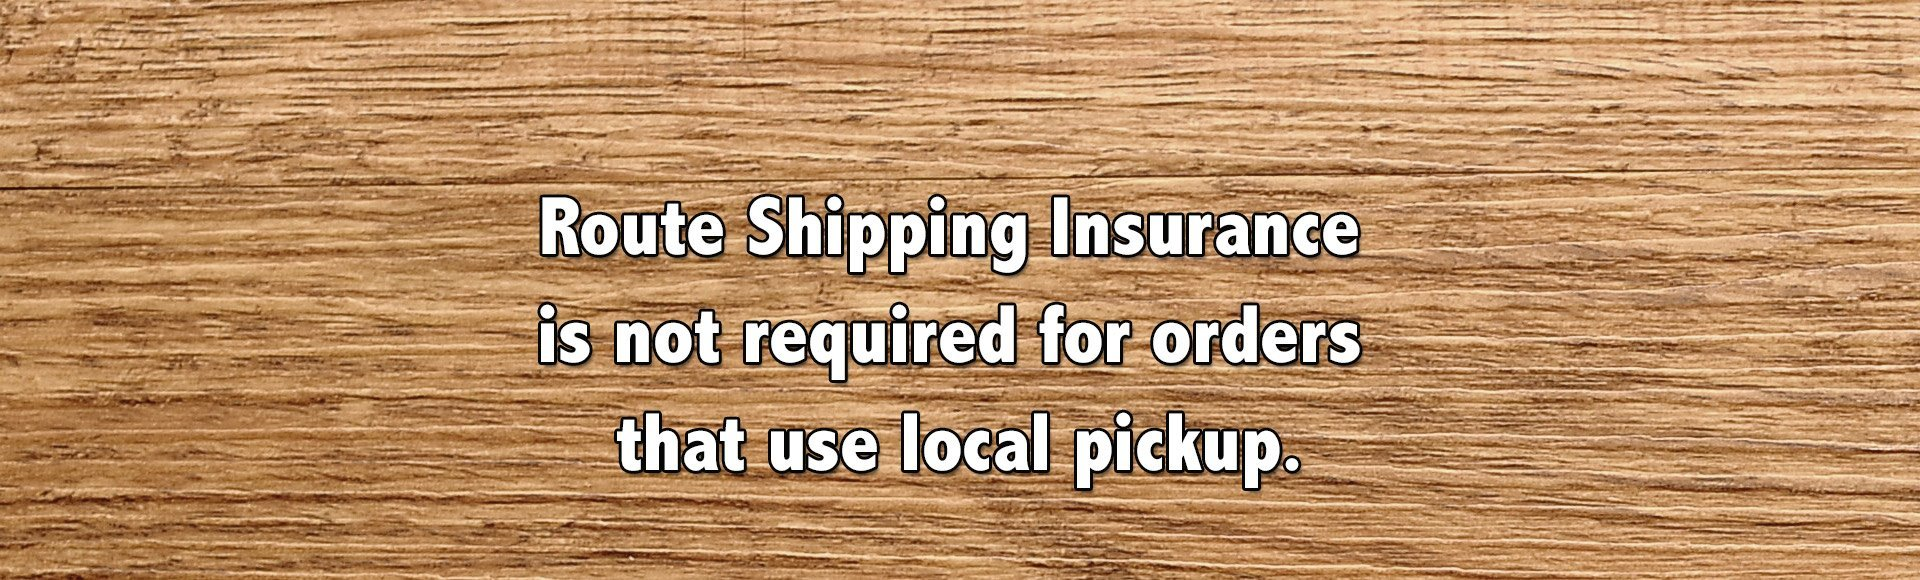 Route shipping insurance is not required for local pickup